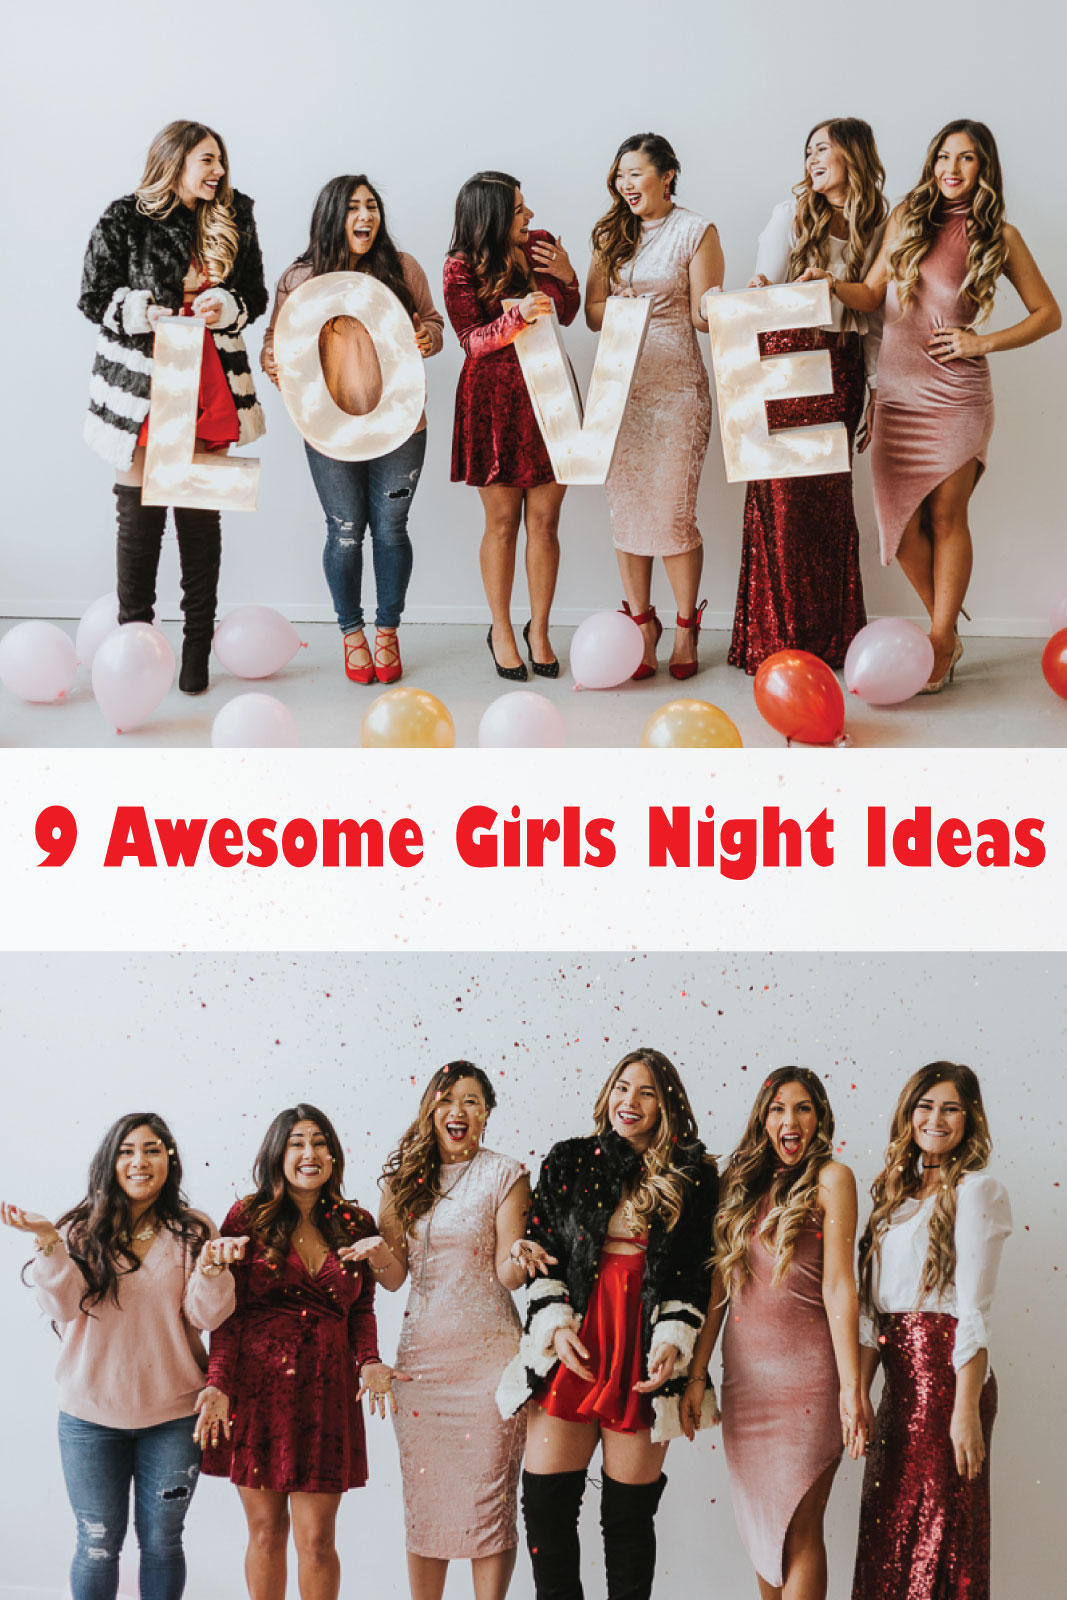 9 Awesome Girls Night Ideas